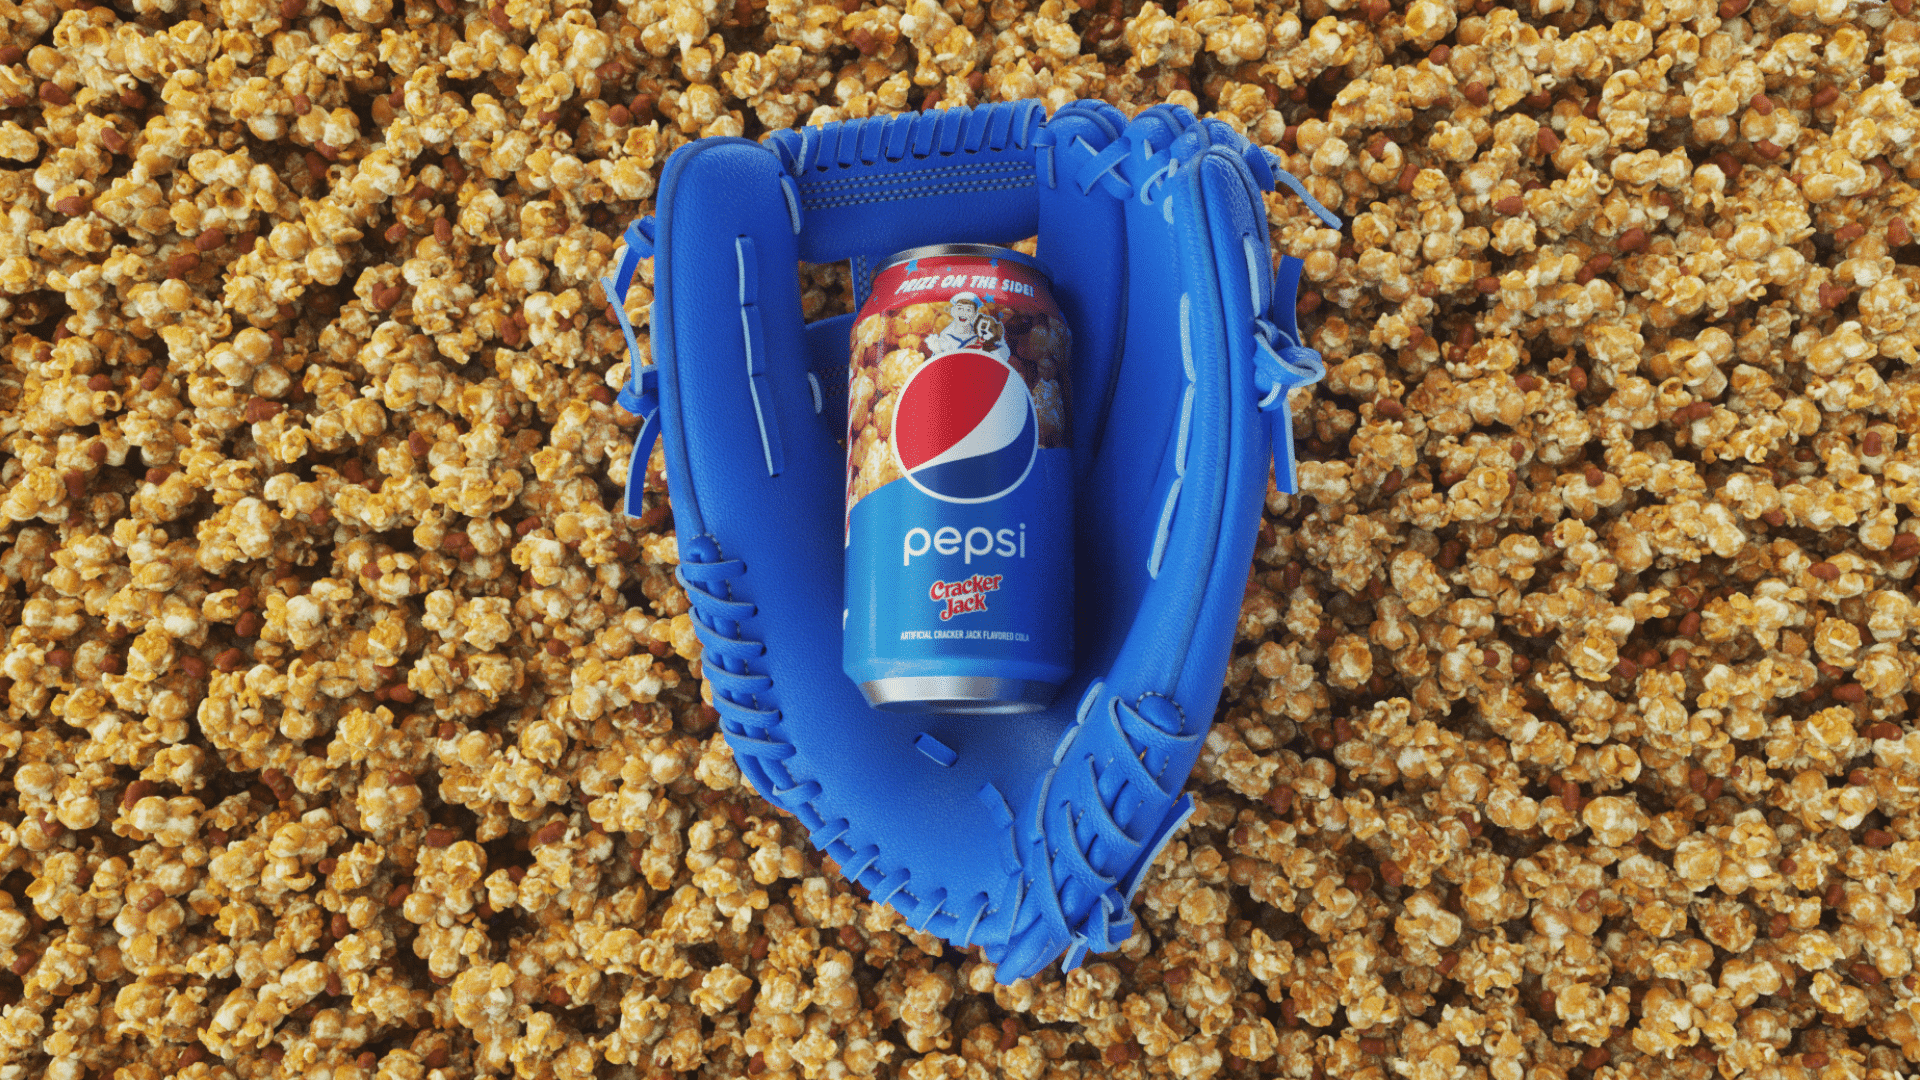 Pepsi is giving away Cracker Jack-flavored cola for free 14